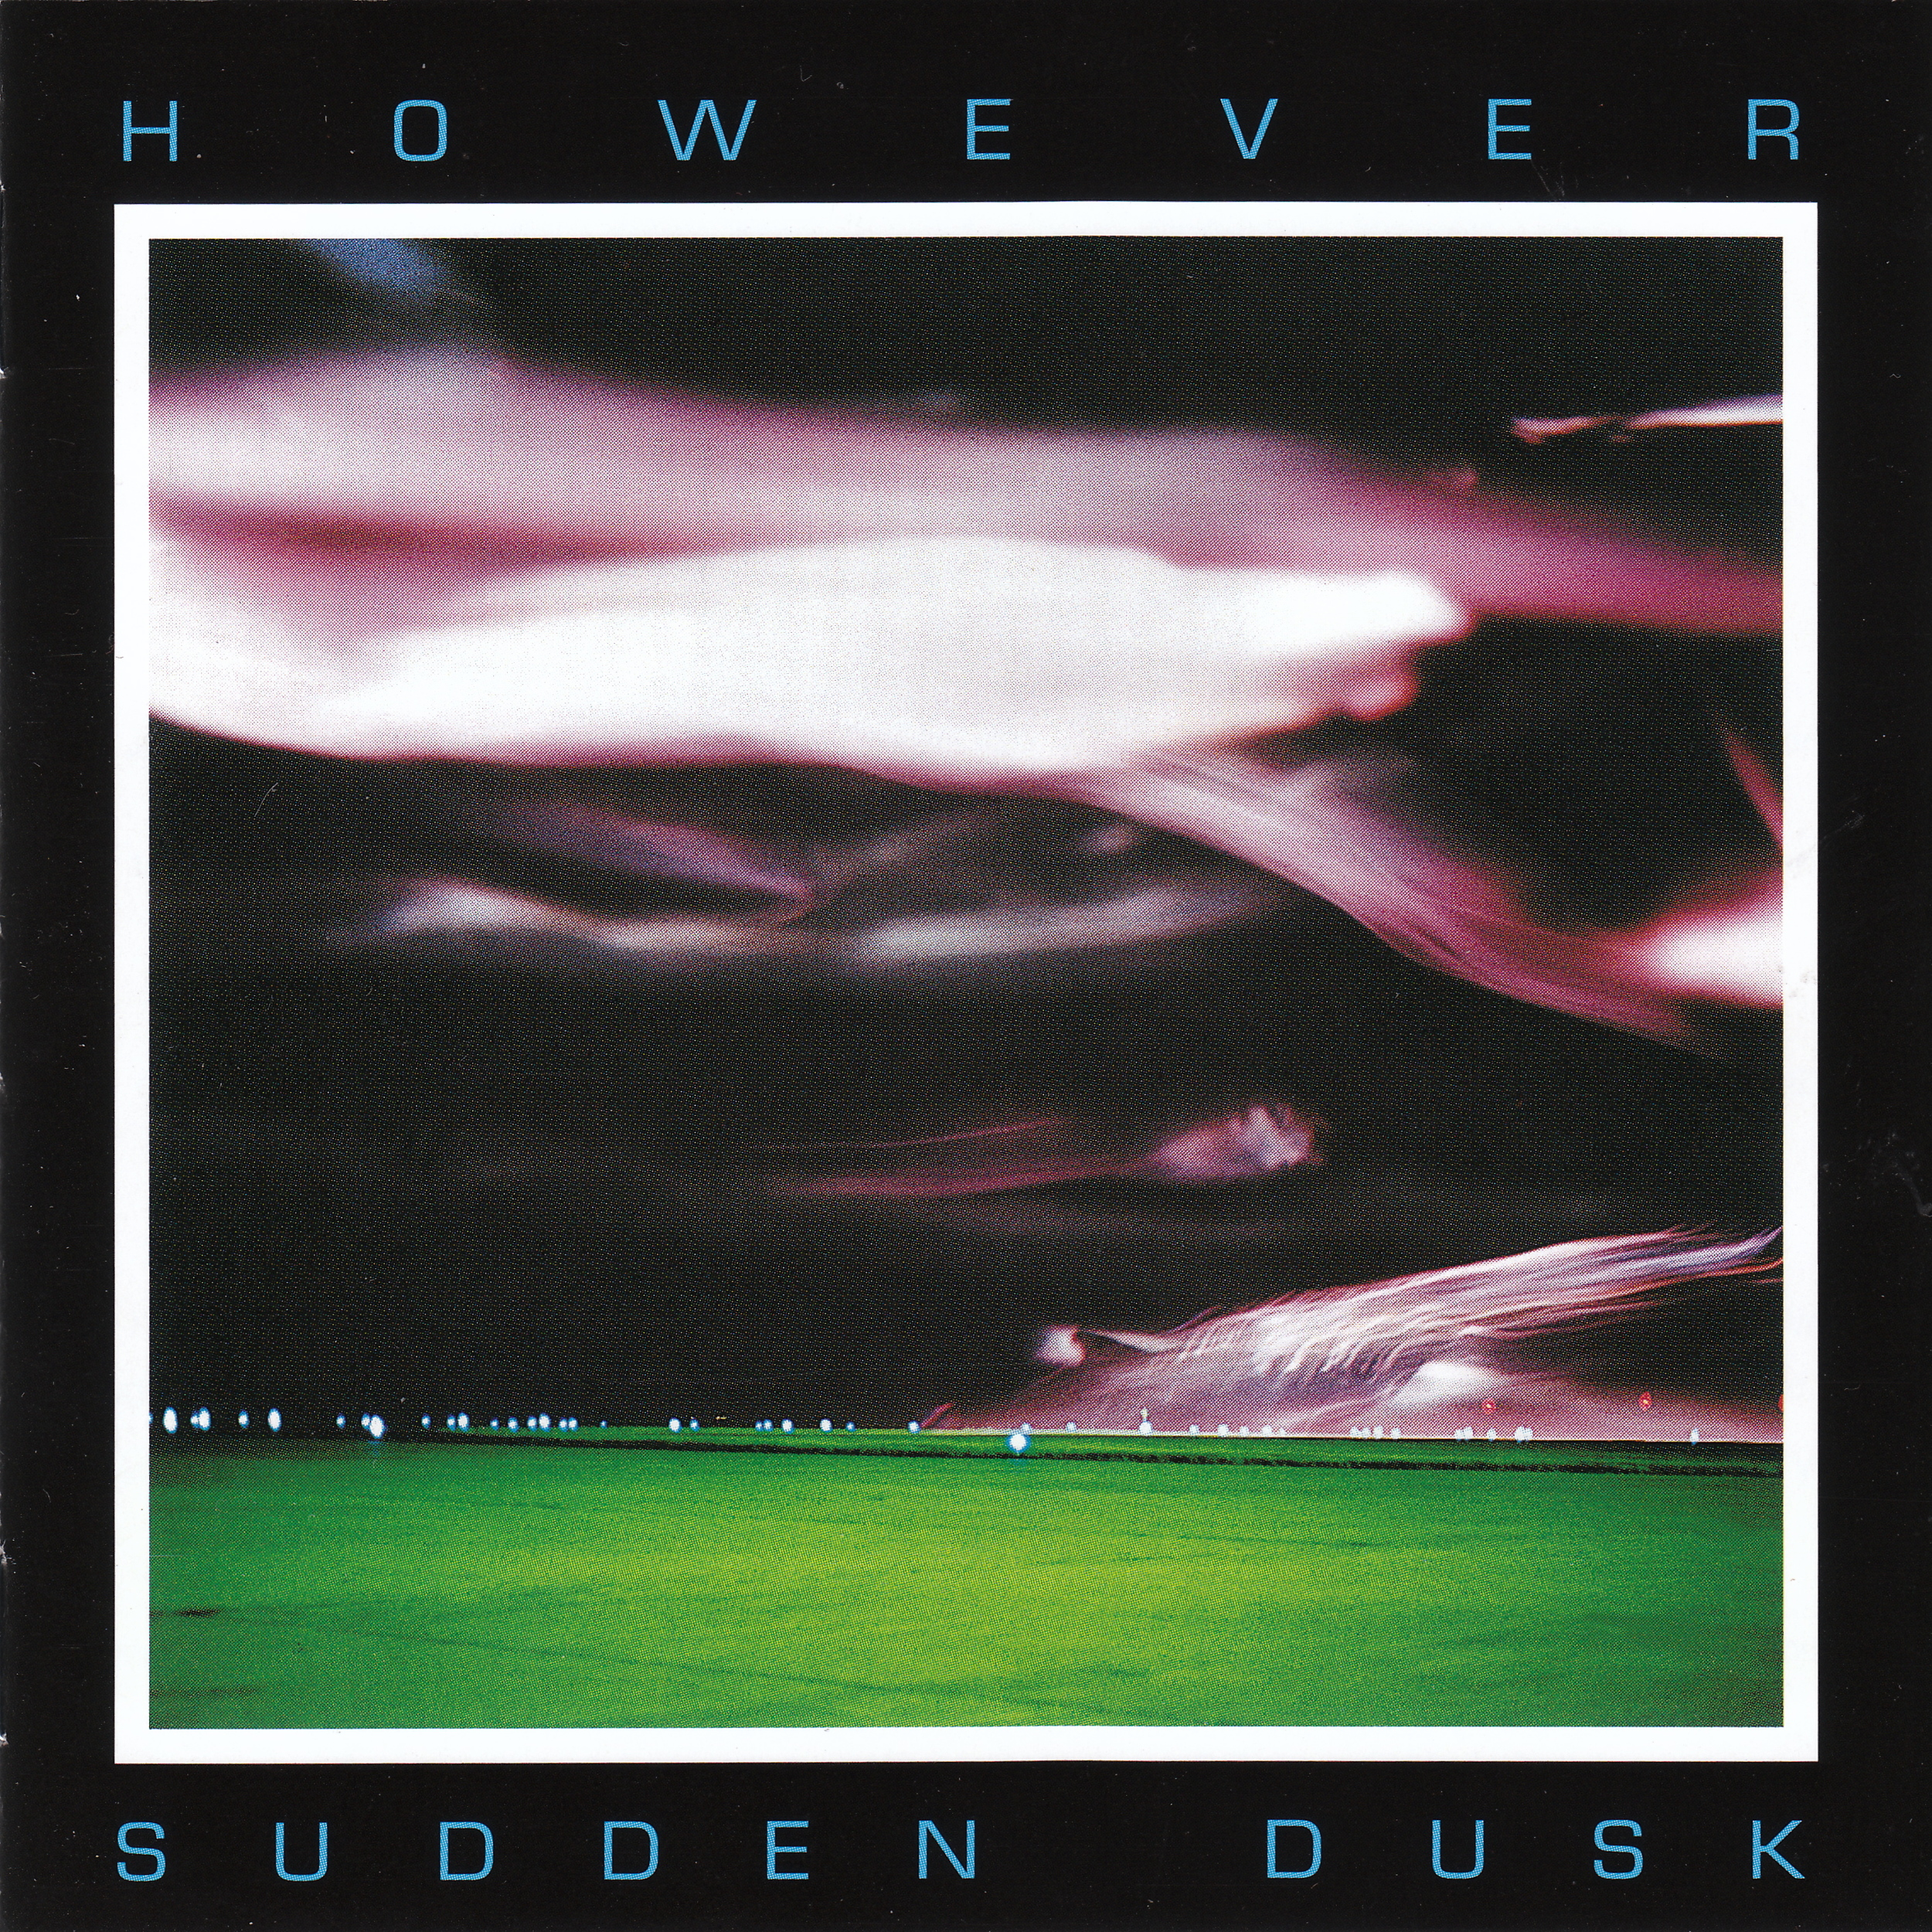 However - Sudden Dusk